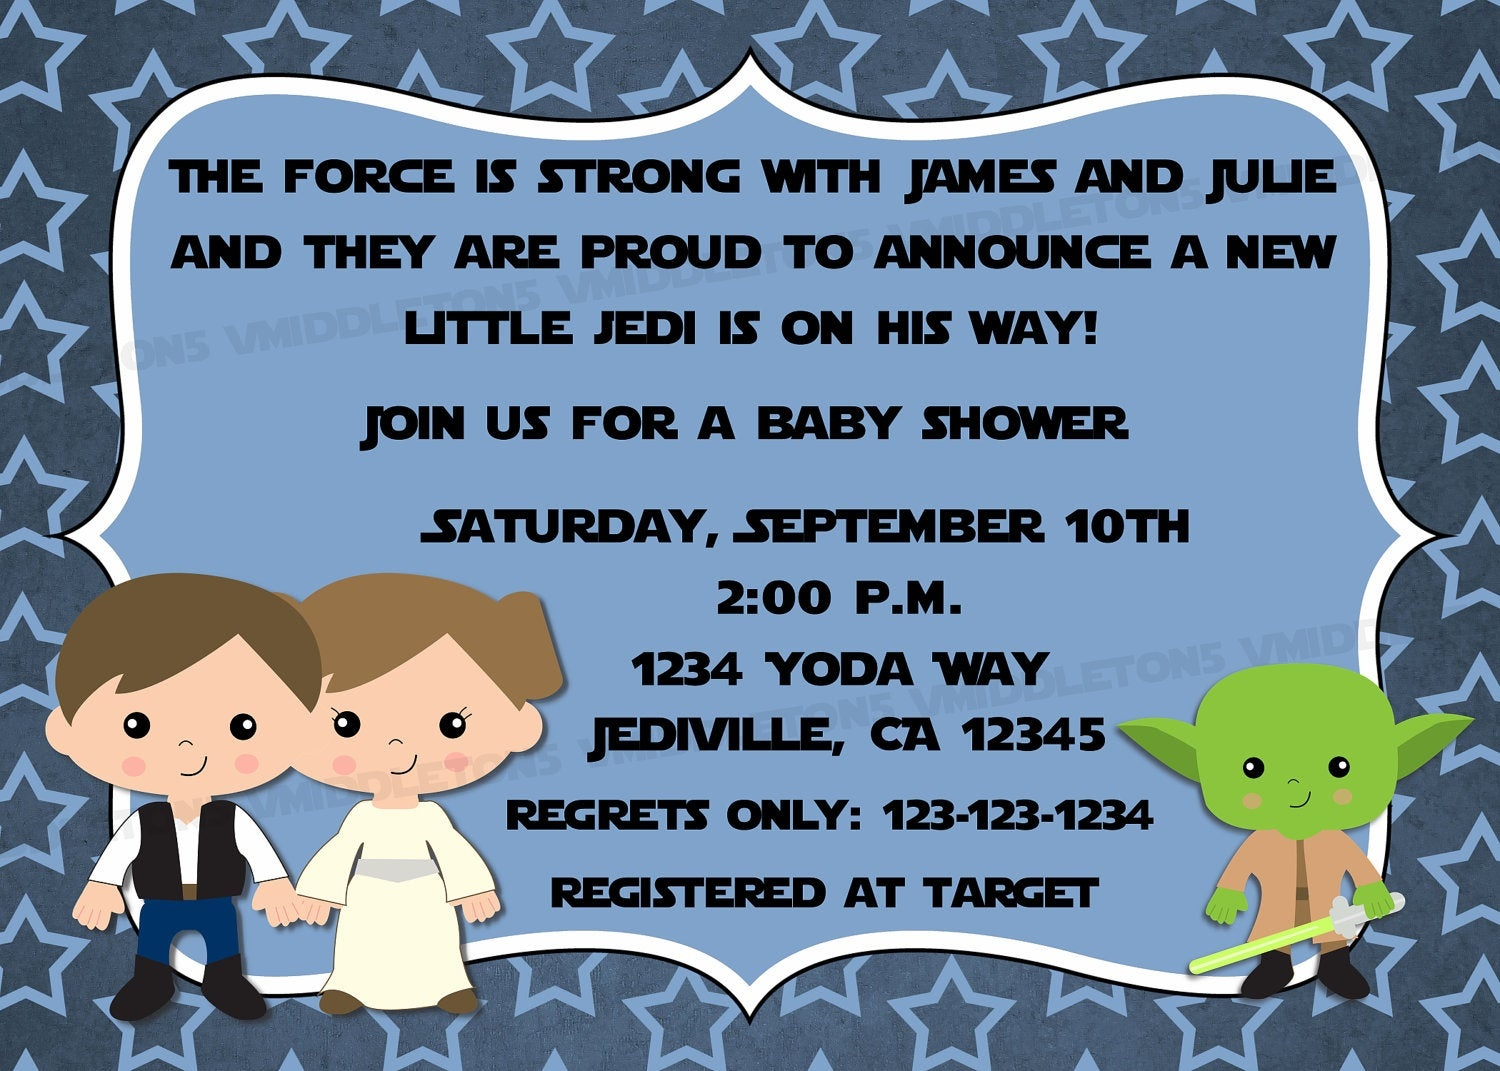 Jedi Star Wars Theme Inspired Baby Shower Invitation With | Etsy - Free Printable Star Wars Baby Shower Invites